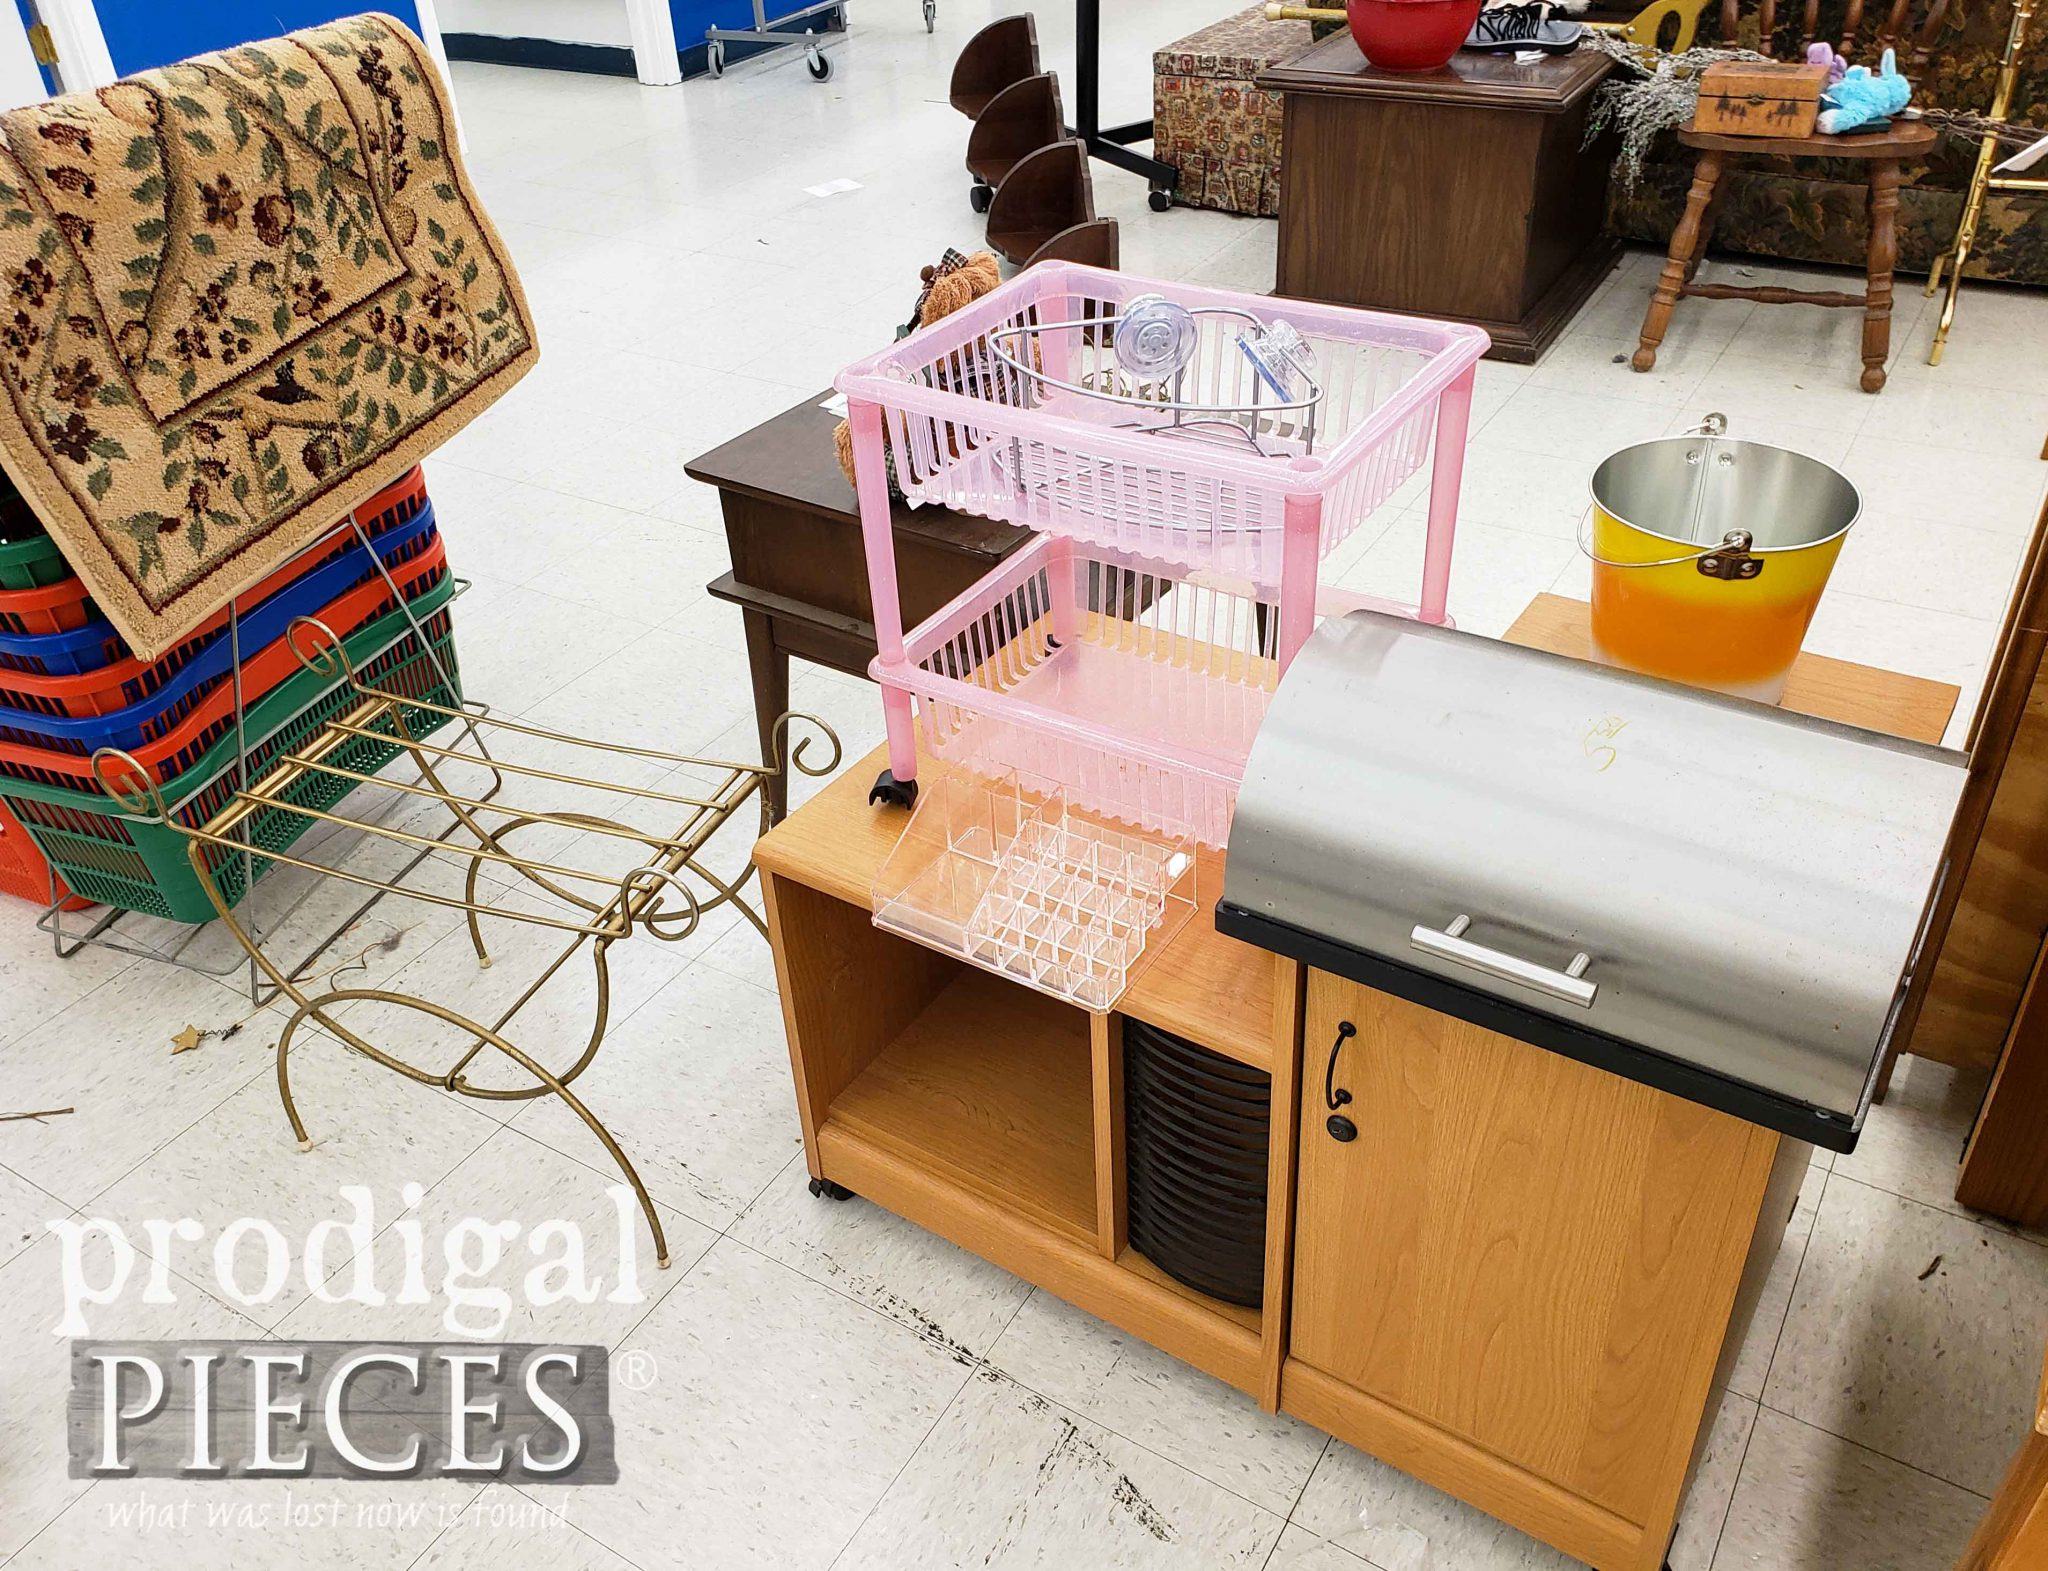 Thrift Store Collection of Goods | prodigalpieces.com